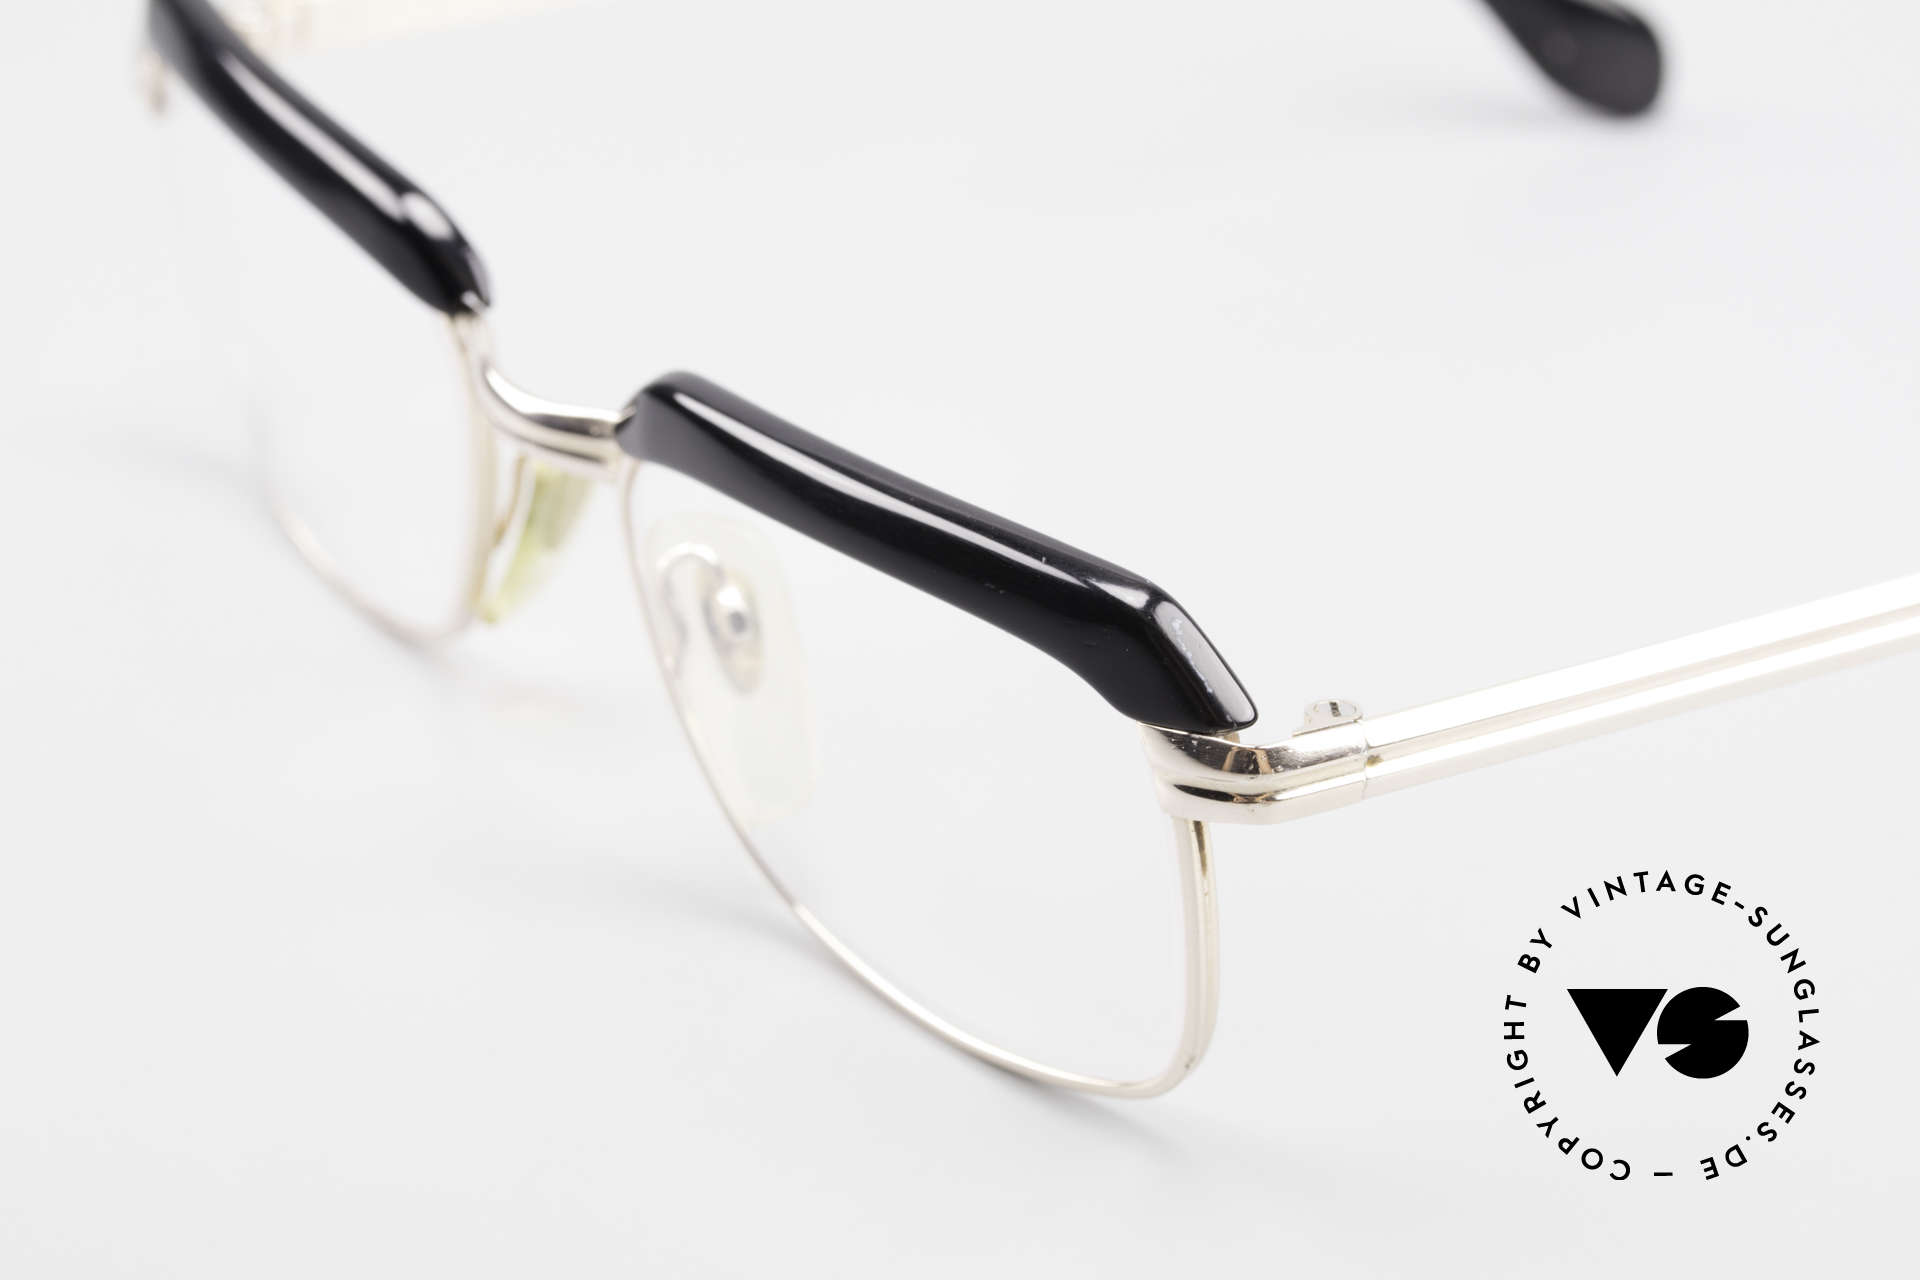 Metzler JK Gold Filled 60's Glasses Frame, 2nd hand model in an excellent condition (ready to wear), Made for Men